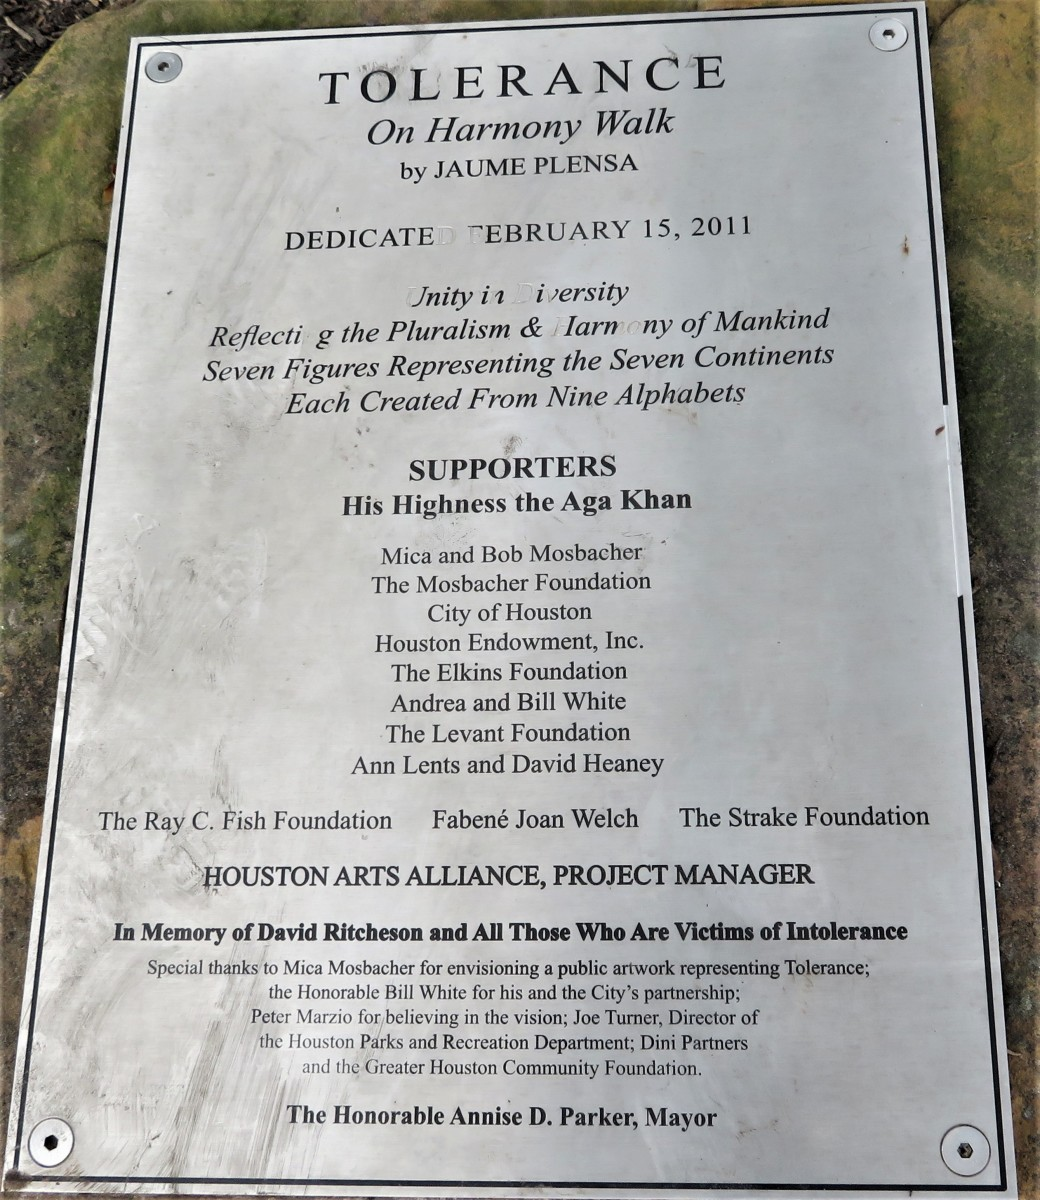 Dedication plaque is mounted on one of those large rocks from Spain.